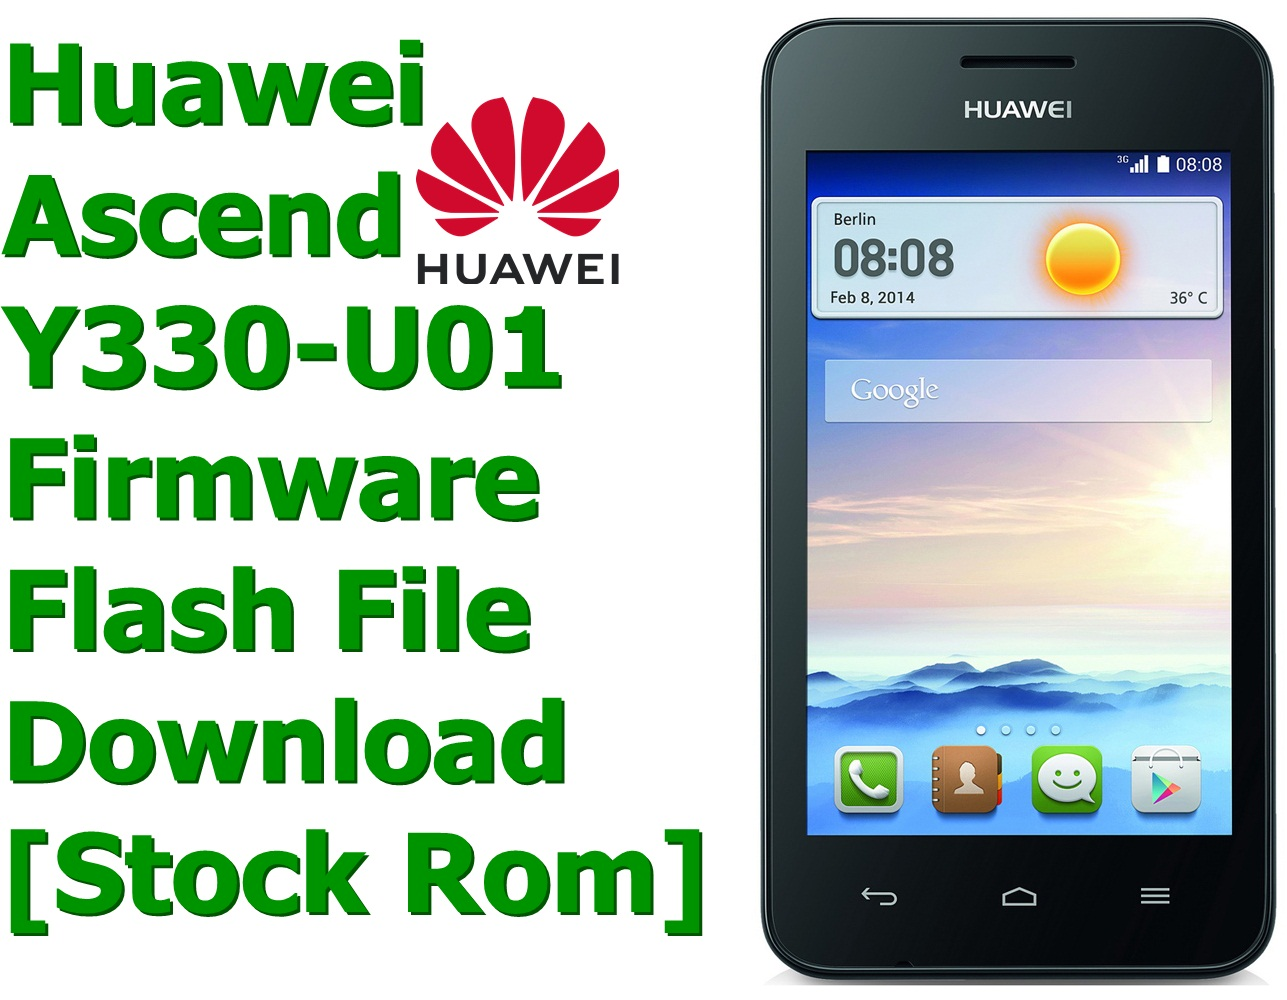 Huawei Ascend Y330-U01 [Stock Rom] Firmware Flash File Download